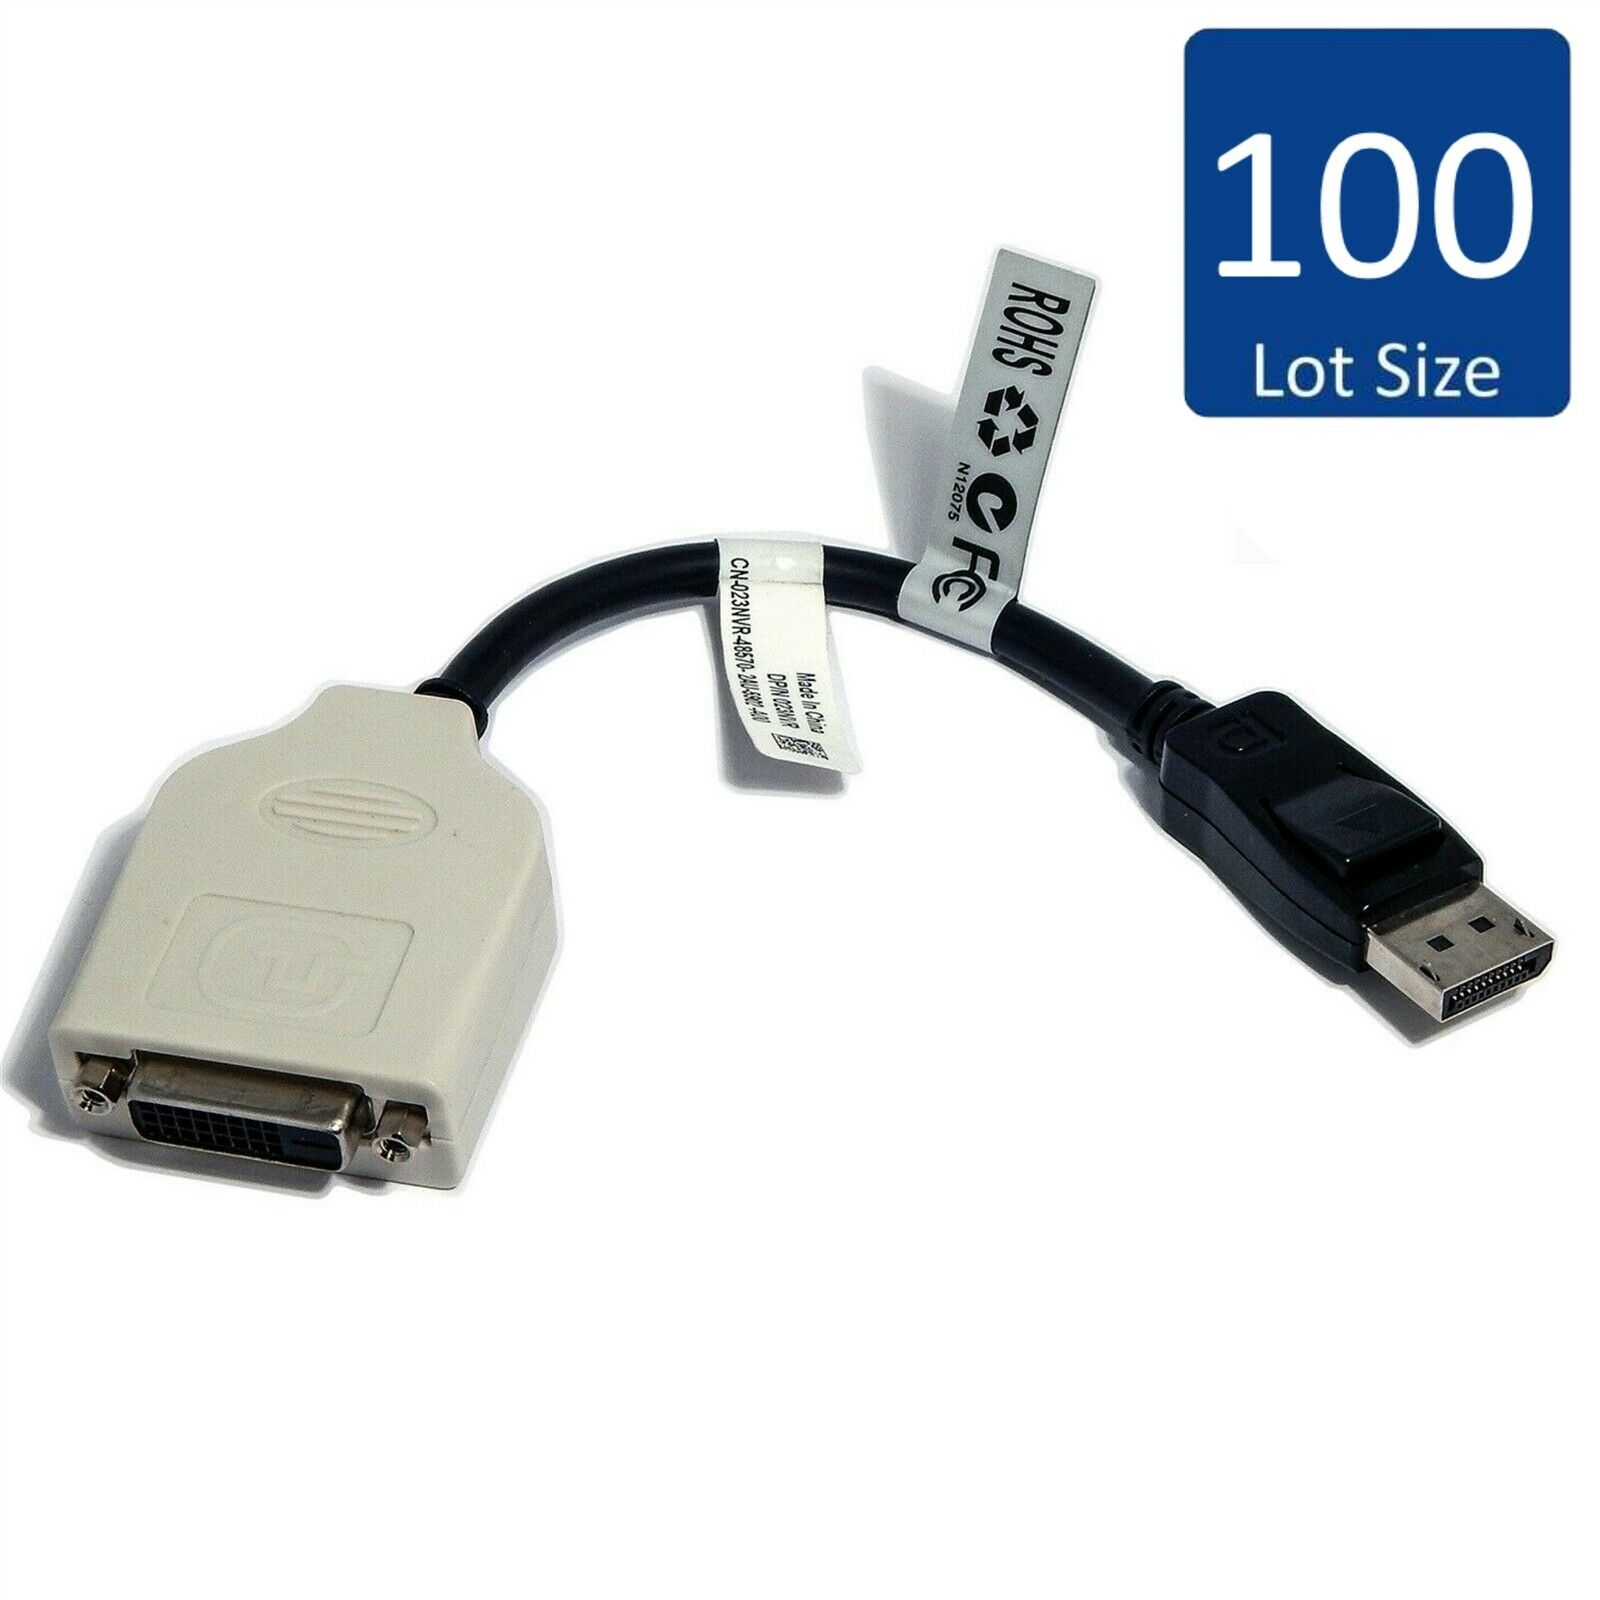 Dell F388M Display Port DP to DVI 24 0F388M CABLE